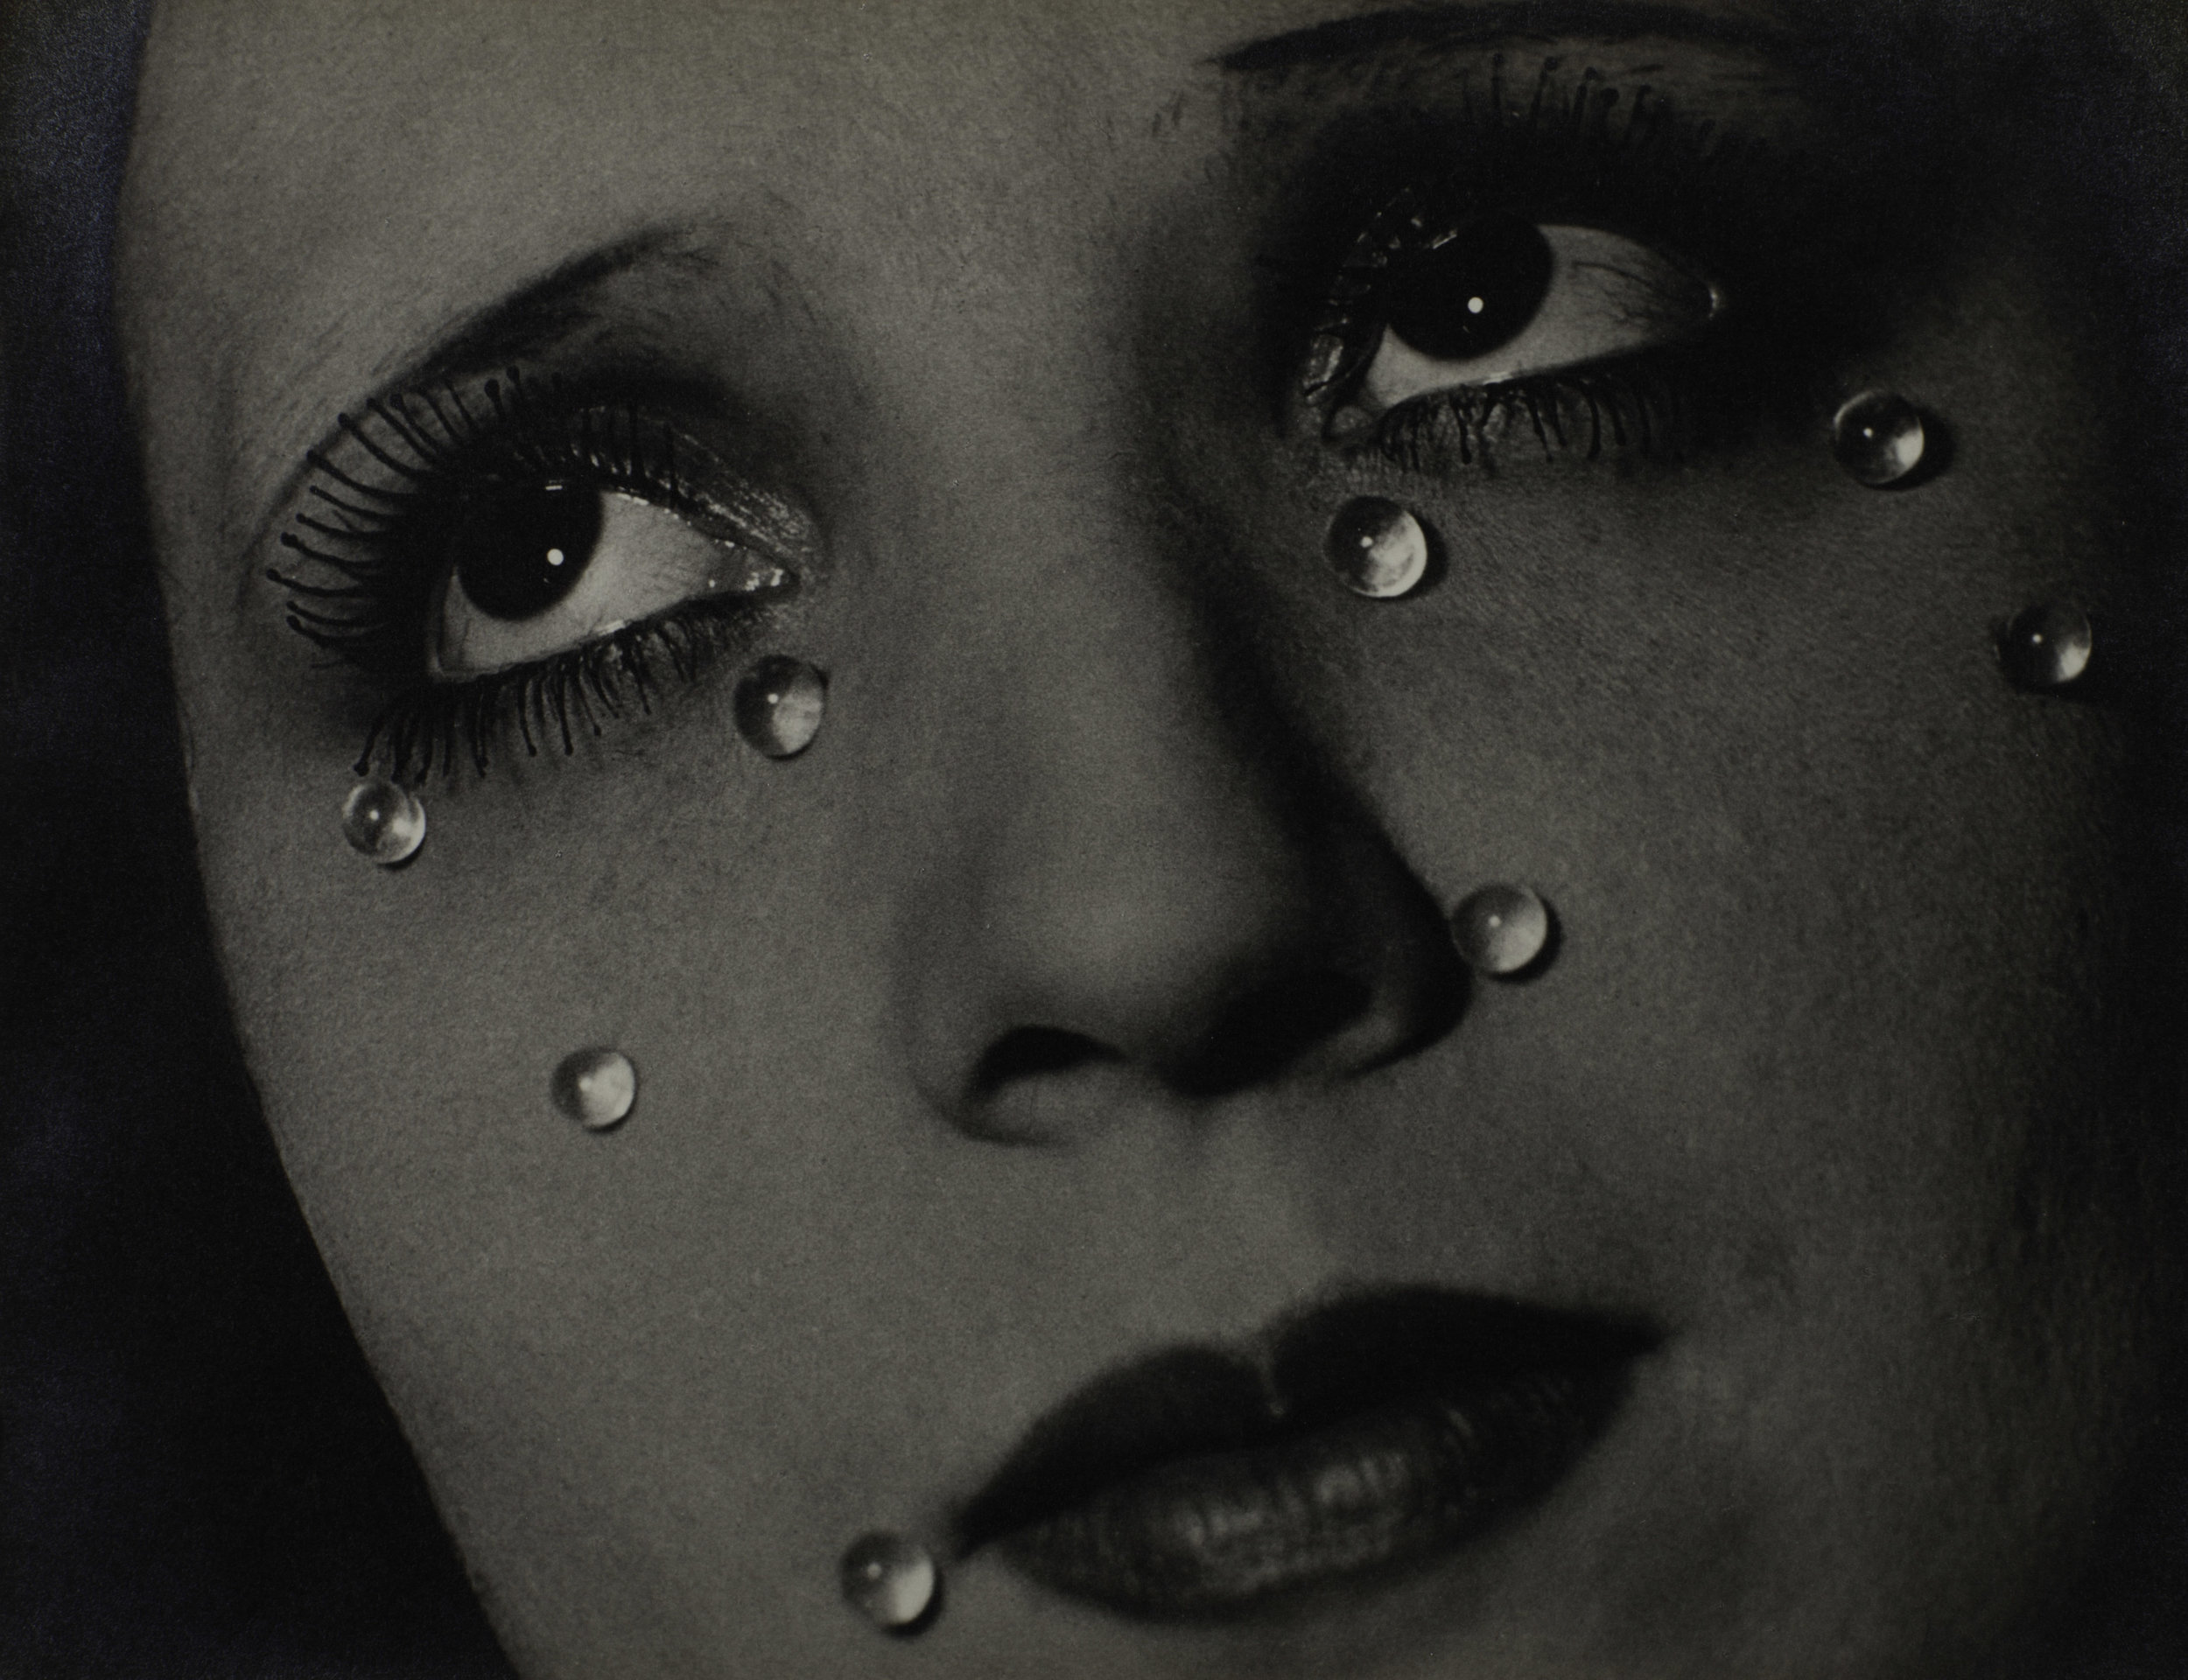 Man Ray 1890-1976    Glass Tears (Les Larmes)    1932Photograph, gelatin silver print on paper229 x 298 mmCollection Elton John© Man Ray Trust/ADAGP, Paris and DACS, London 2016